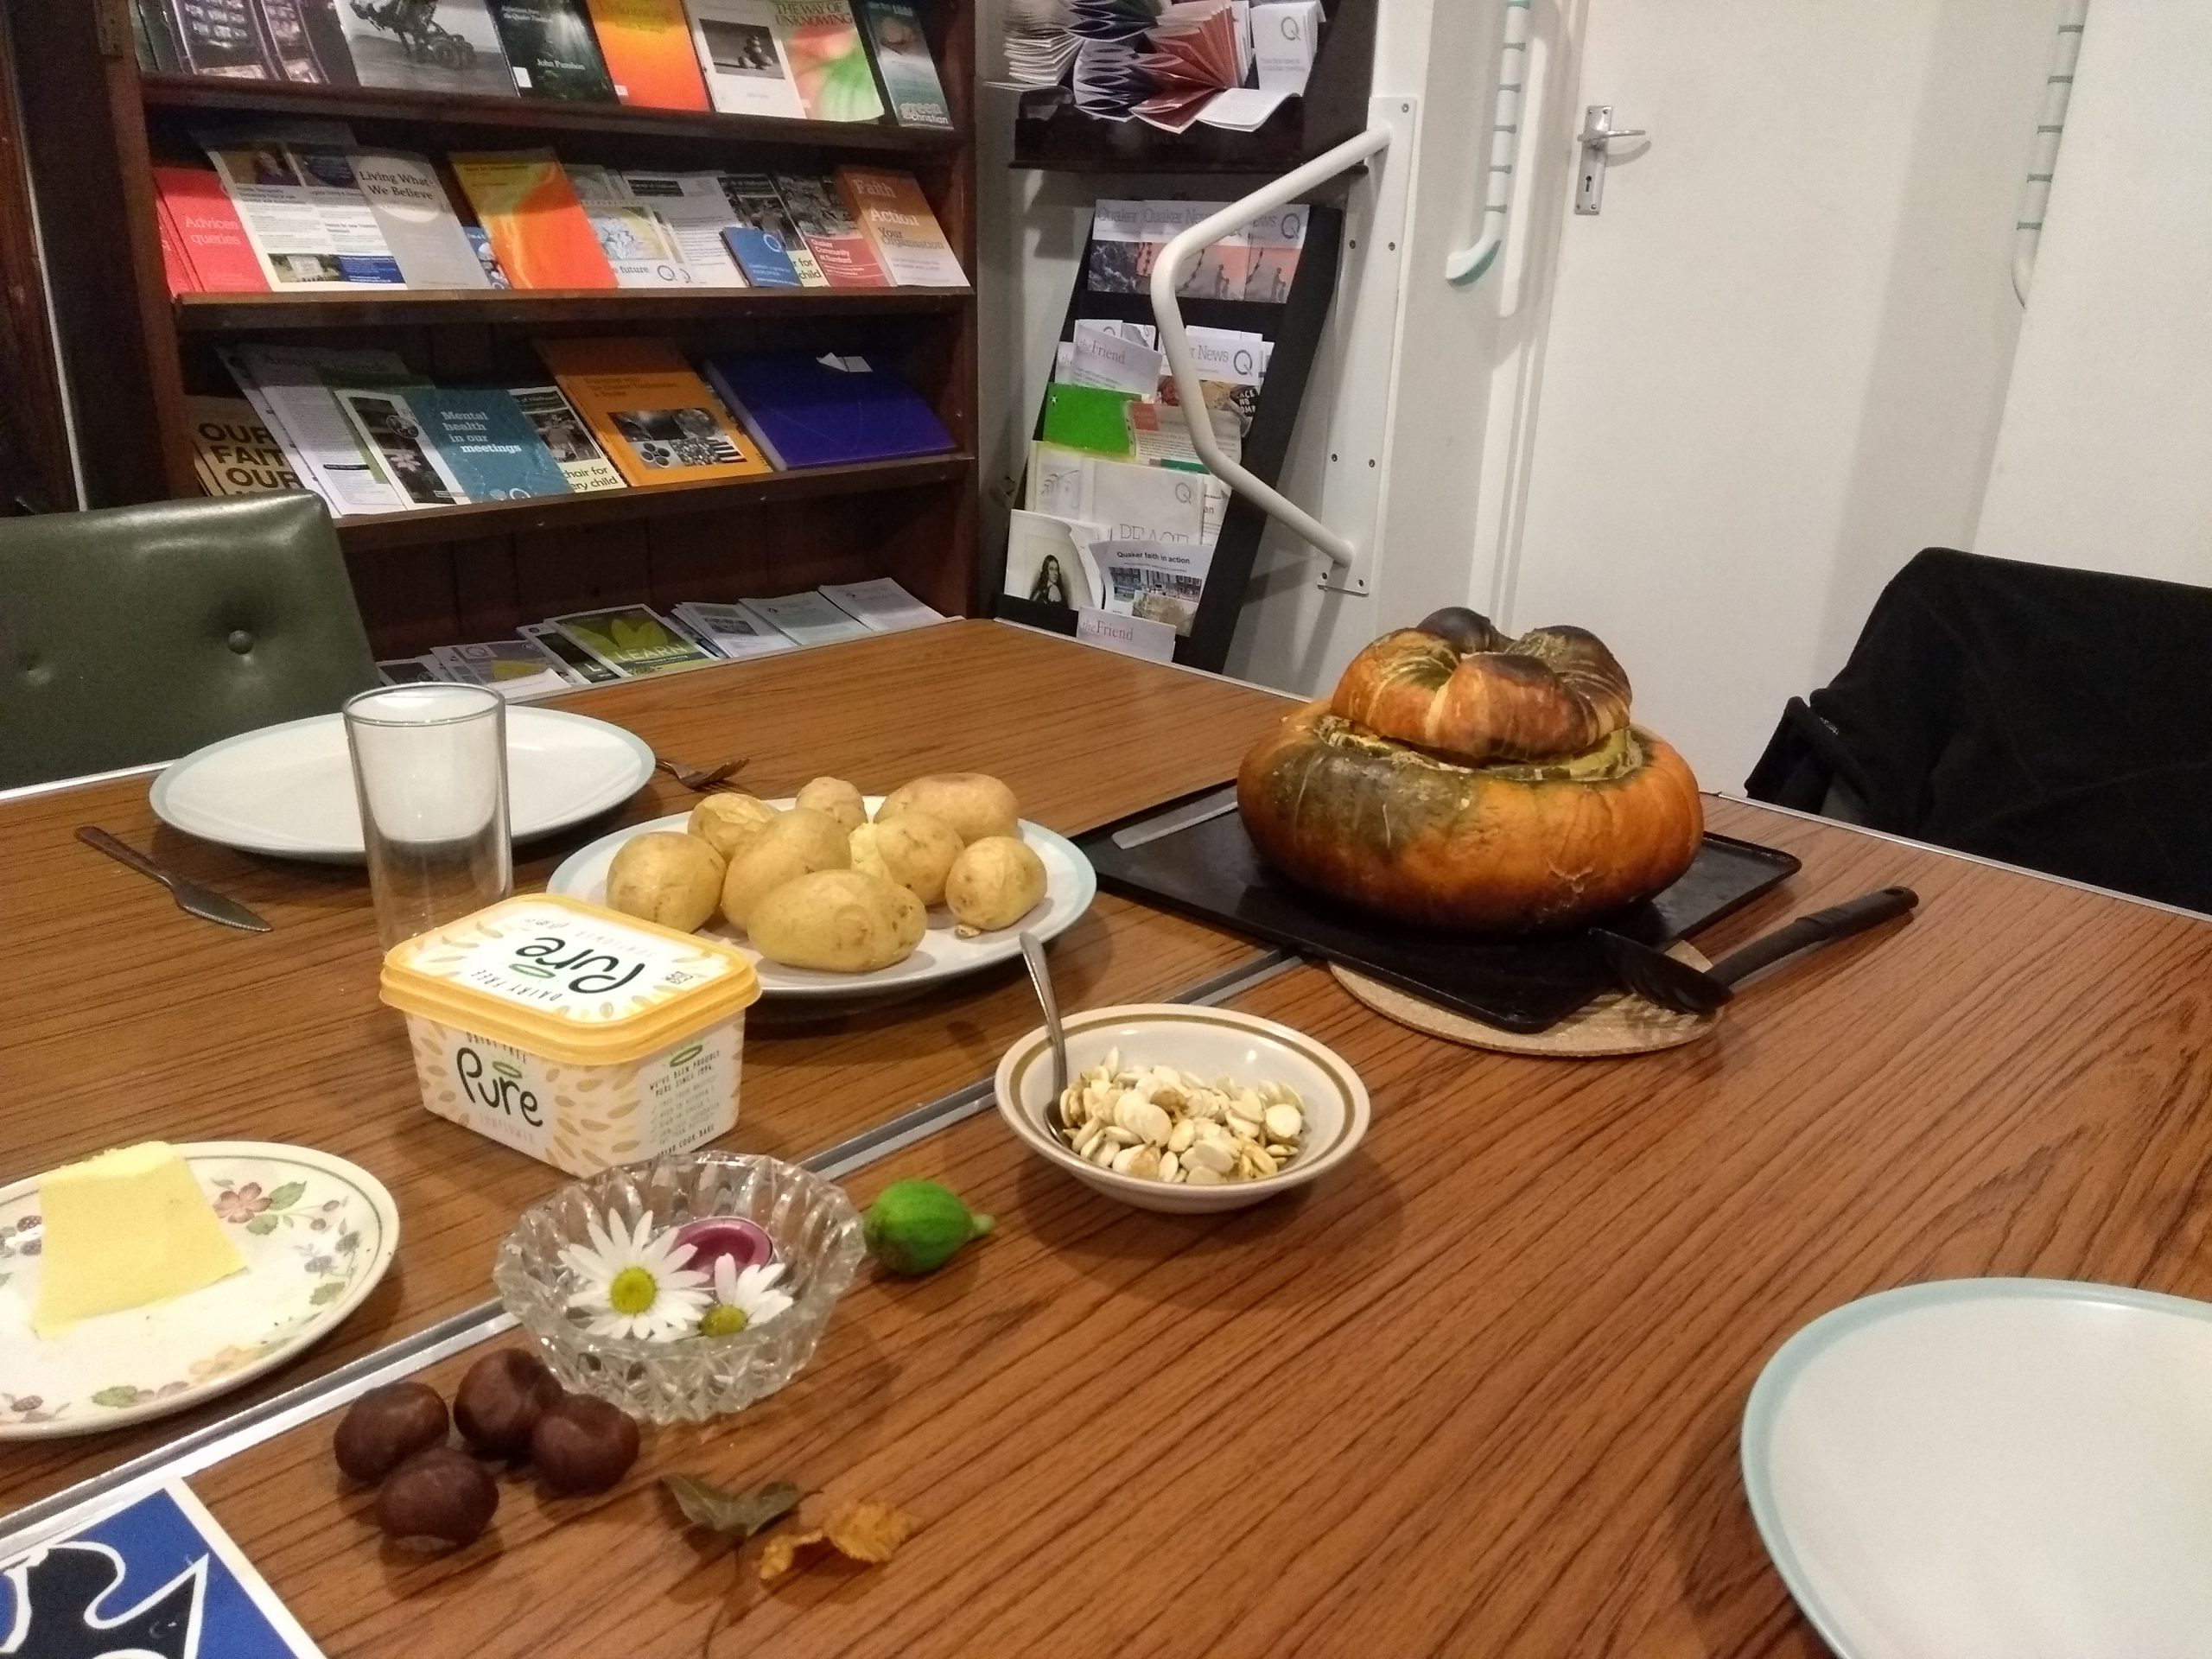 Photo of a dining table, with a large squash, baked potatoes and spread on it, also plates.